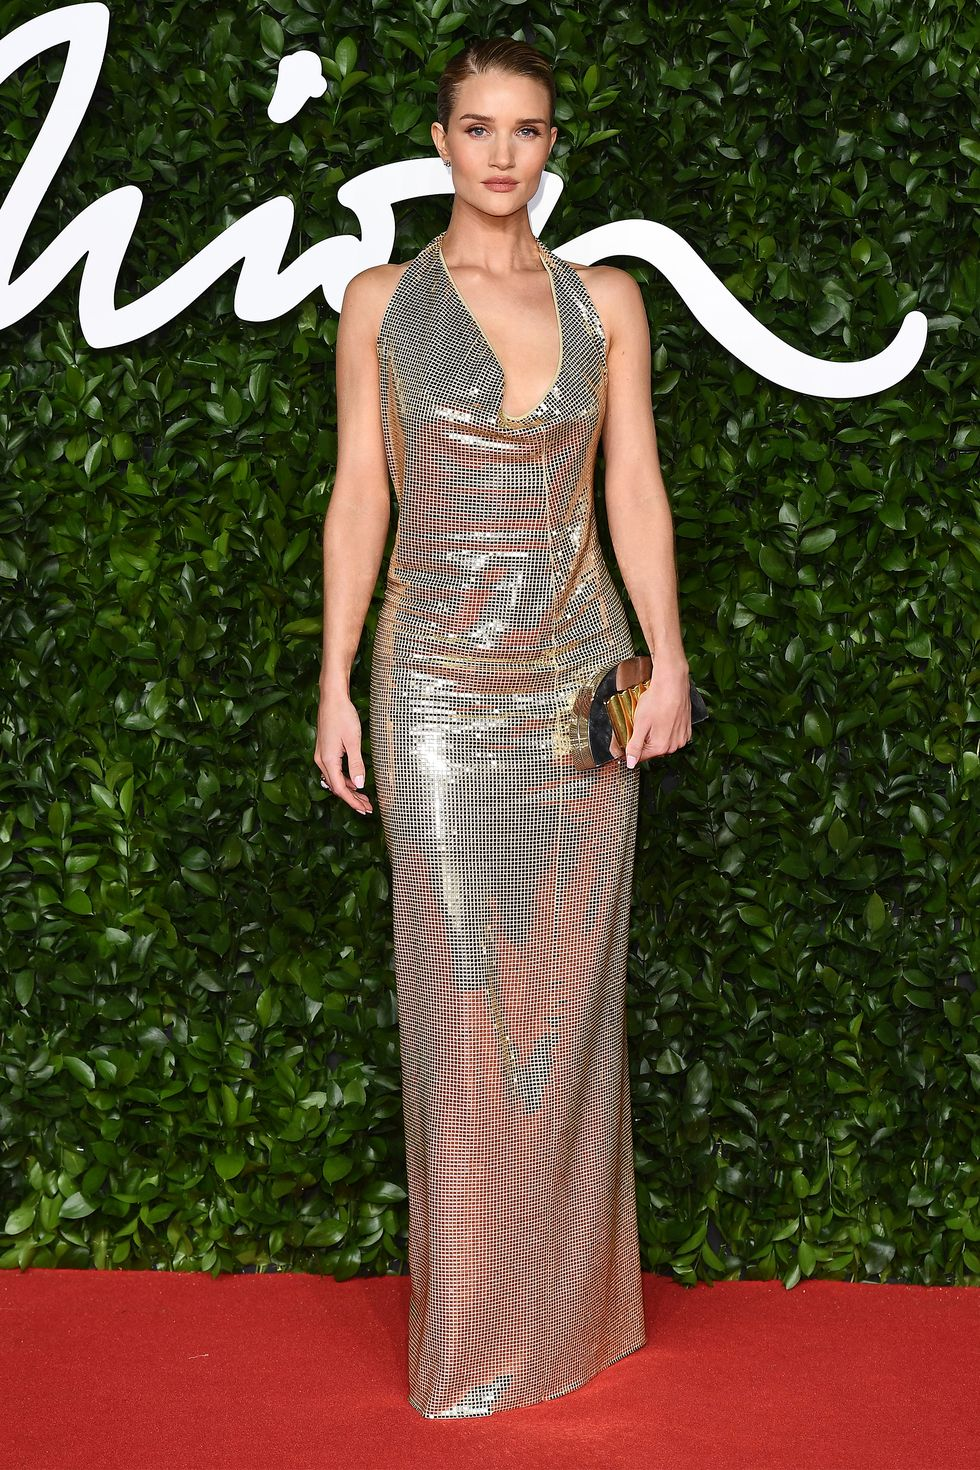 hbz-fashion-awards-2019-rosie-hungtington-whiteley-1575314217